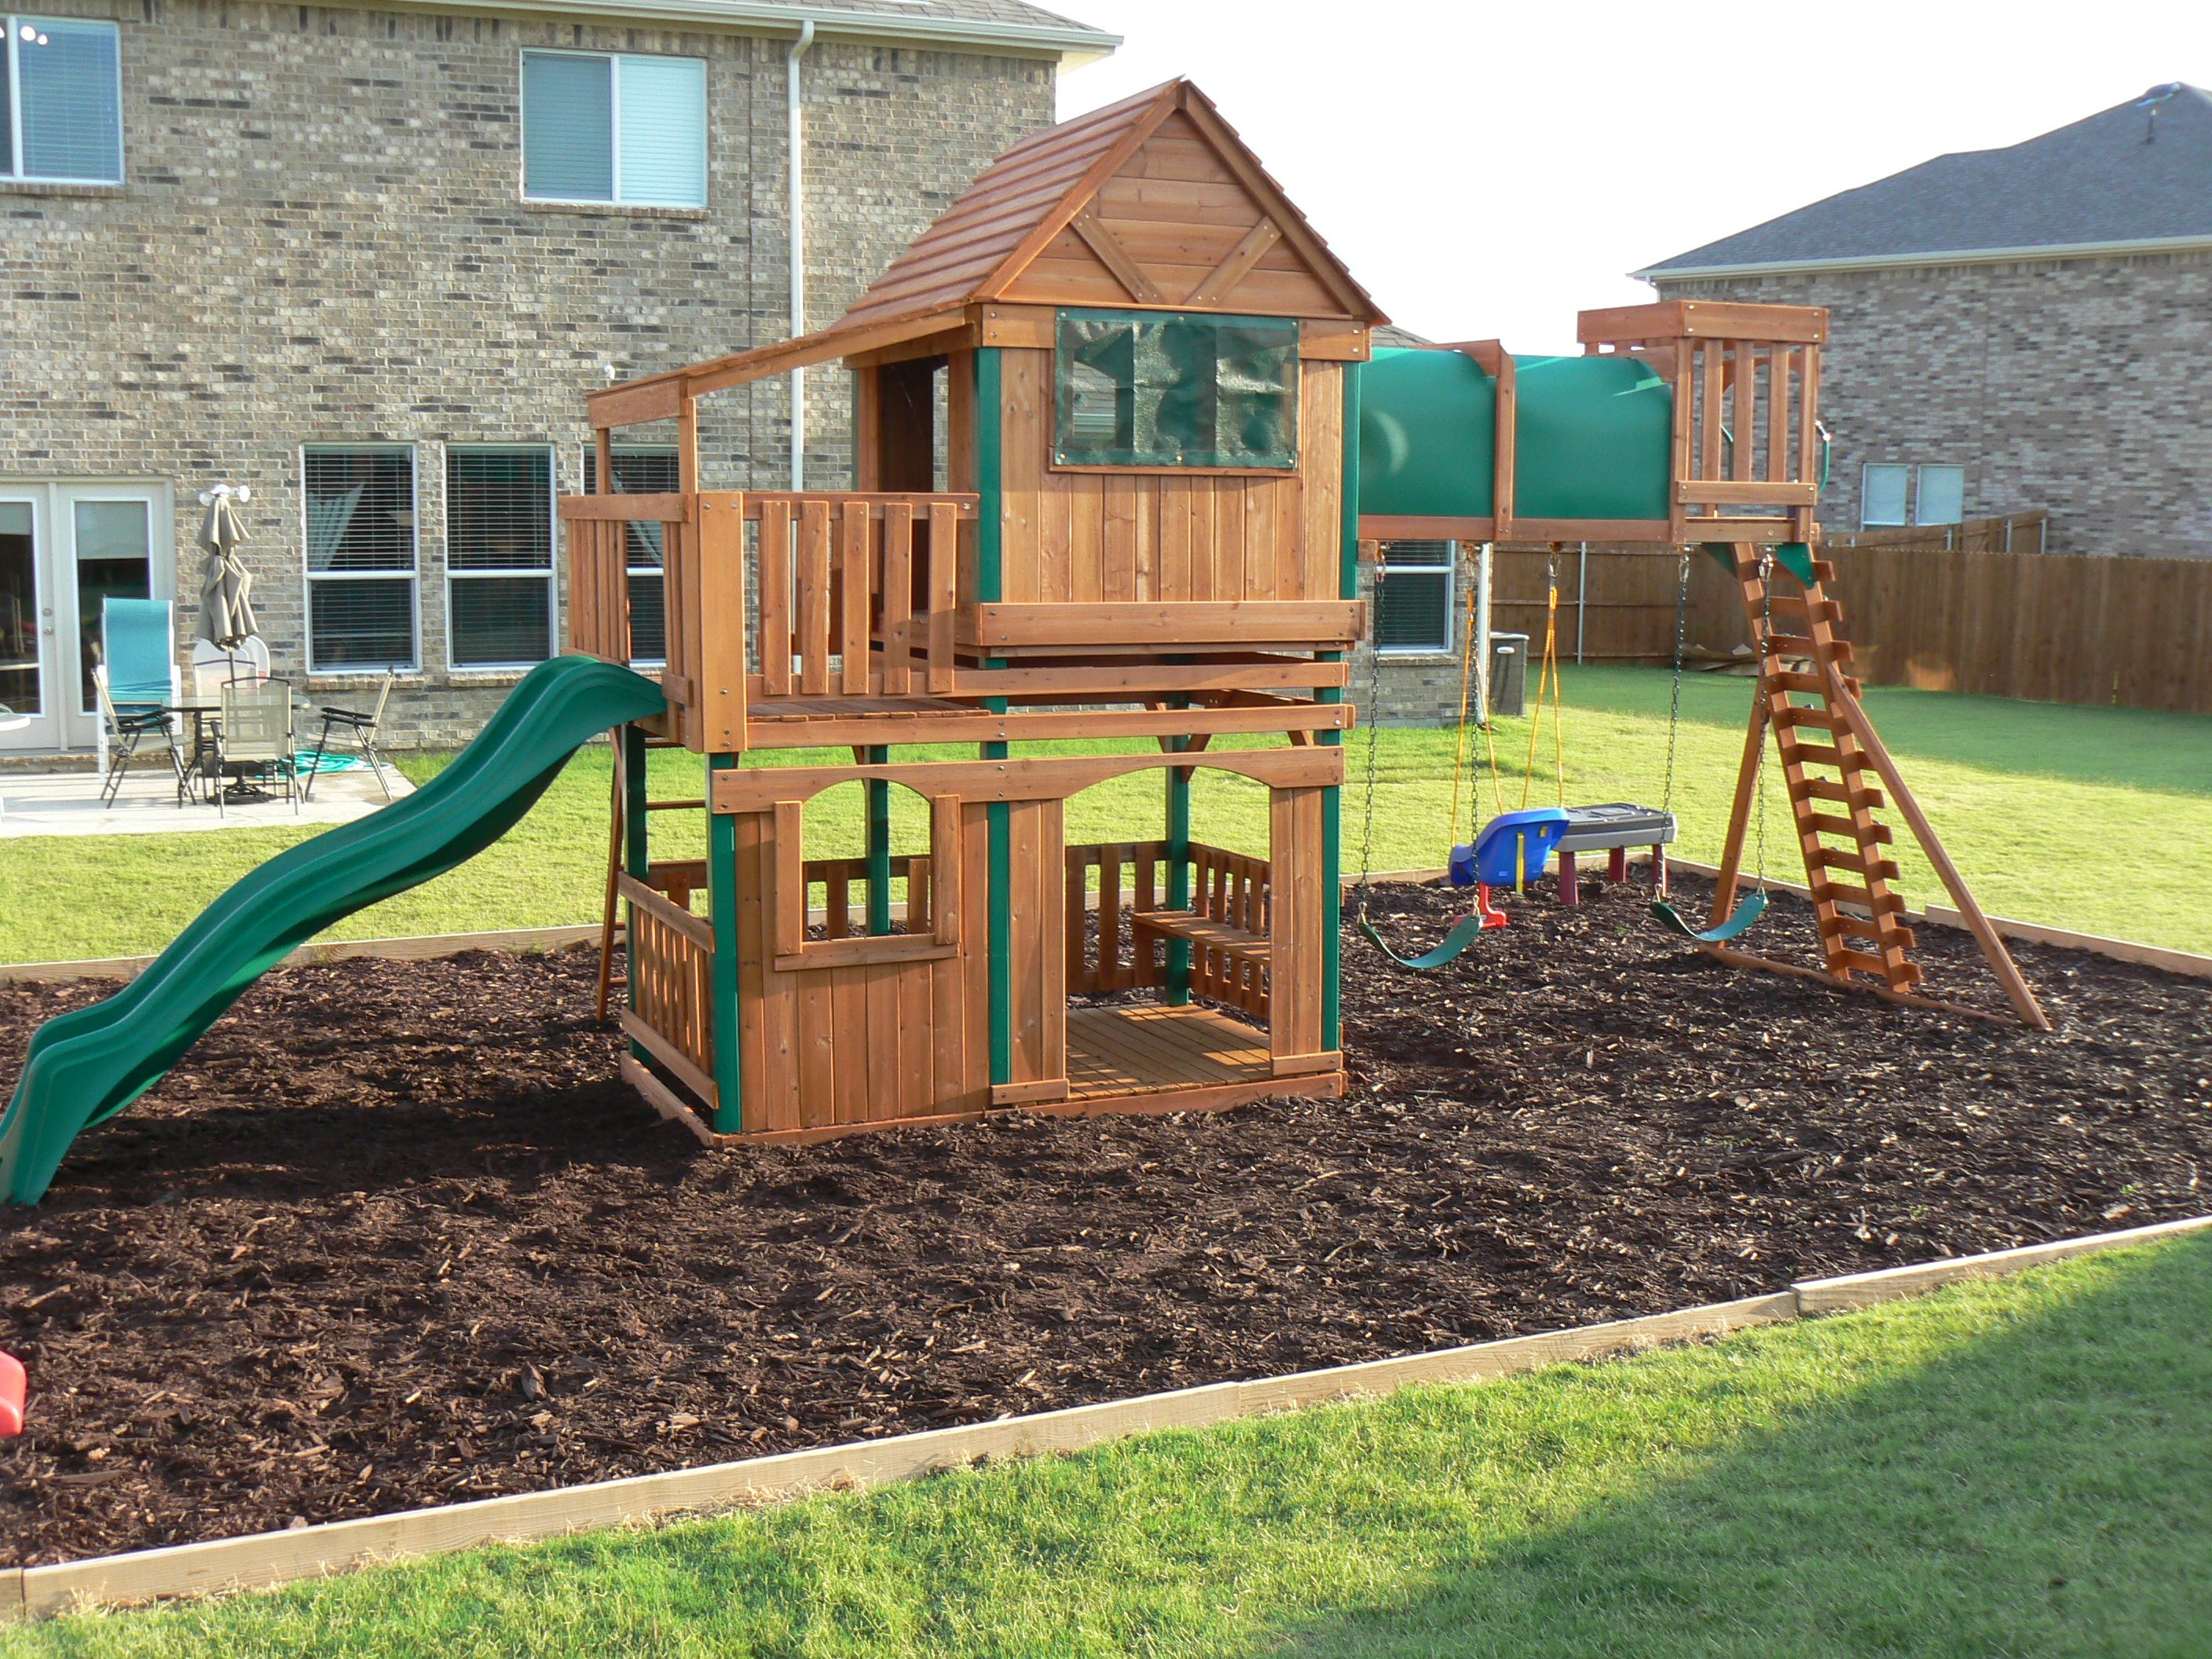 Step Step How To Border A Playground Area Outside In for 10 Genius Ways How to Improve Backyard Playset Ideas